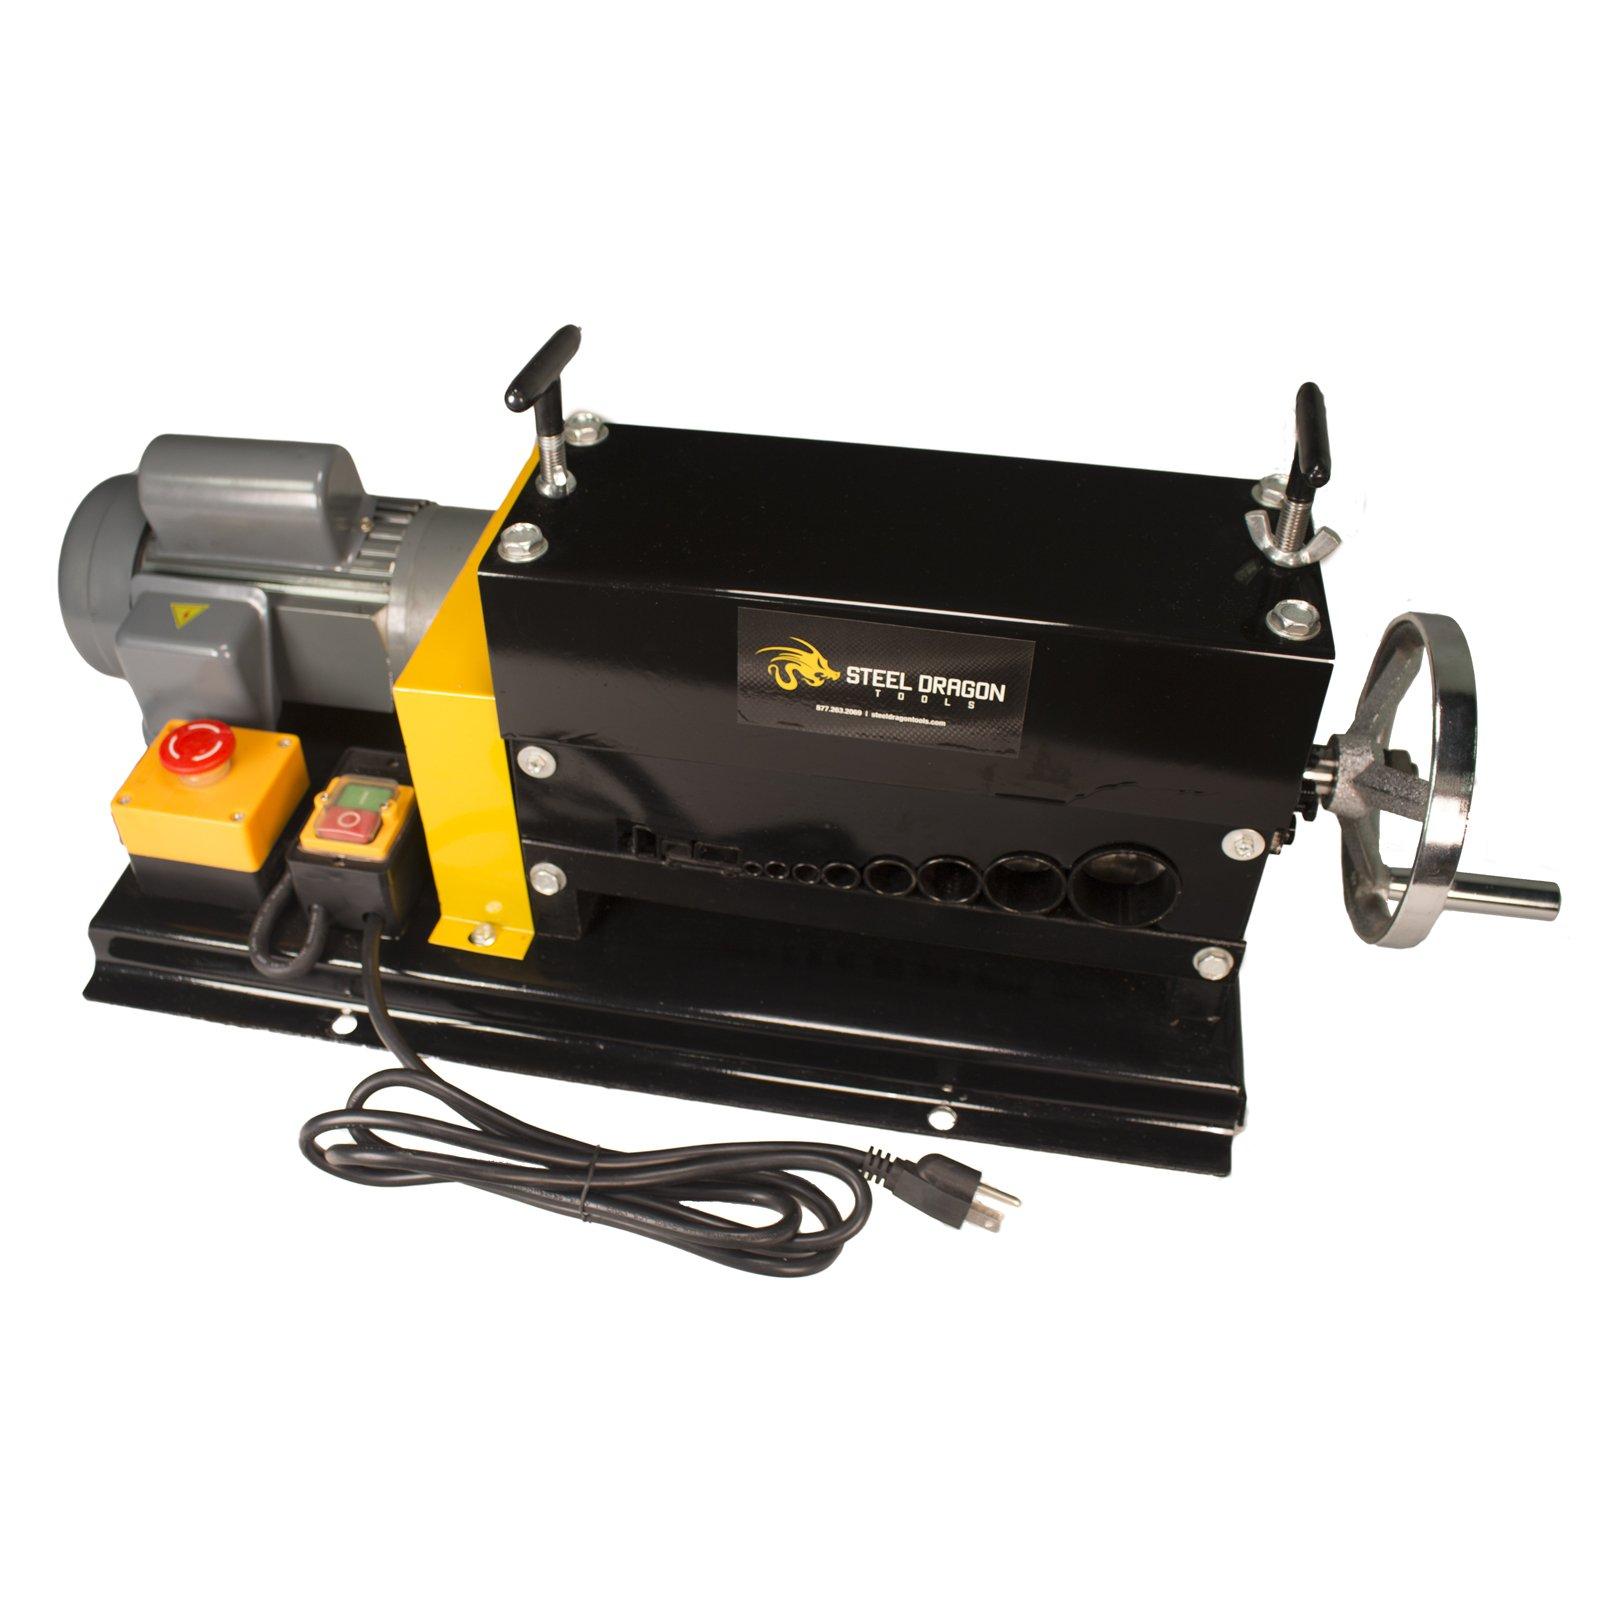 Steel Dragon Tools WRA35 Automatic Wire Stripping Machine Strip Scrap Copper Wire by Steel Dragon Tools (Image #1)